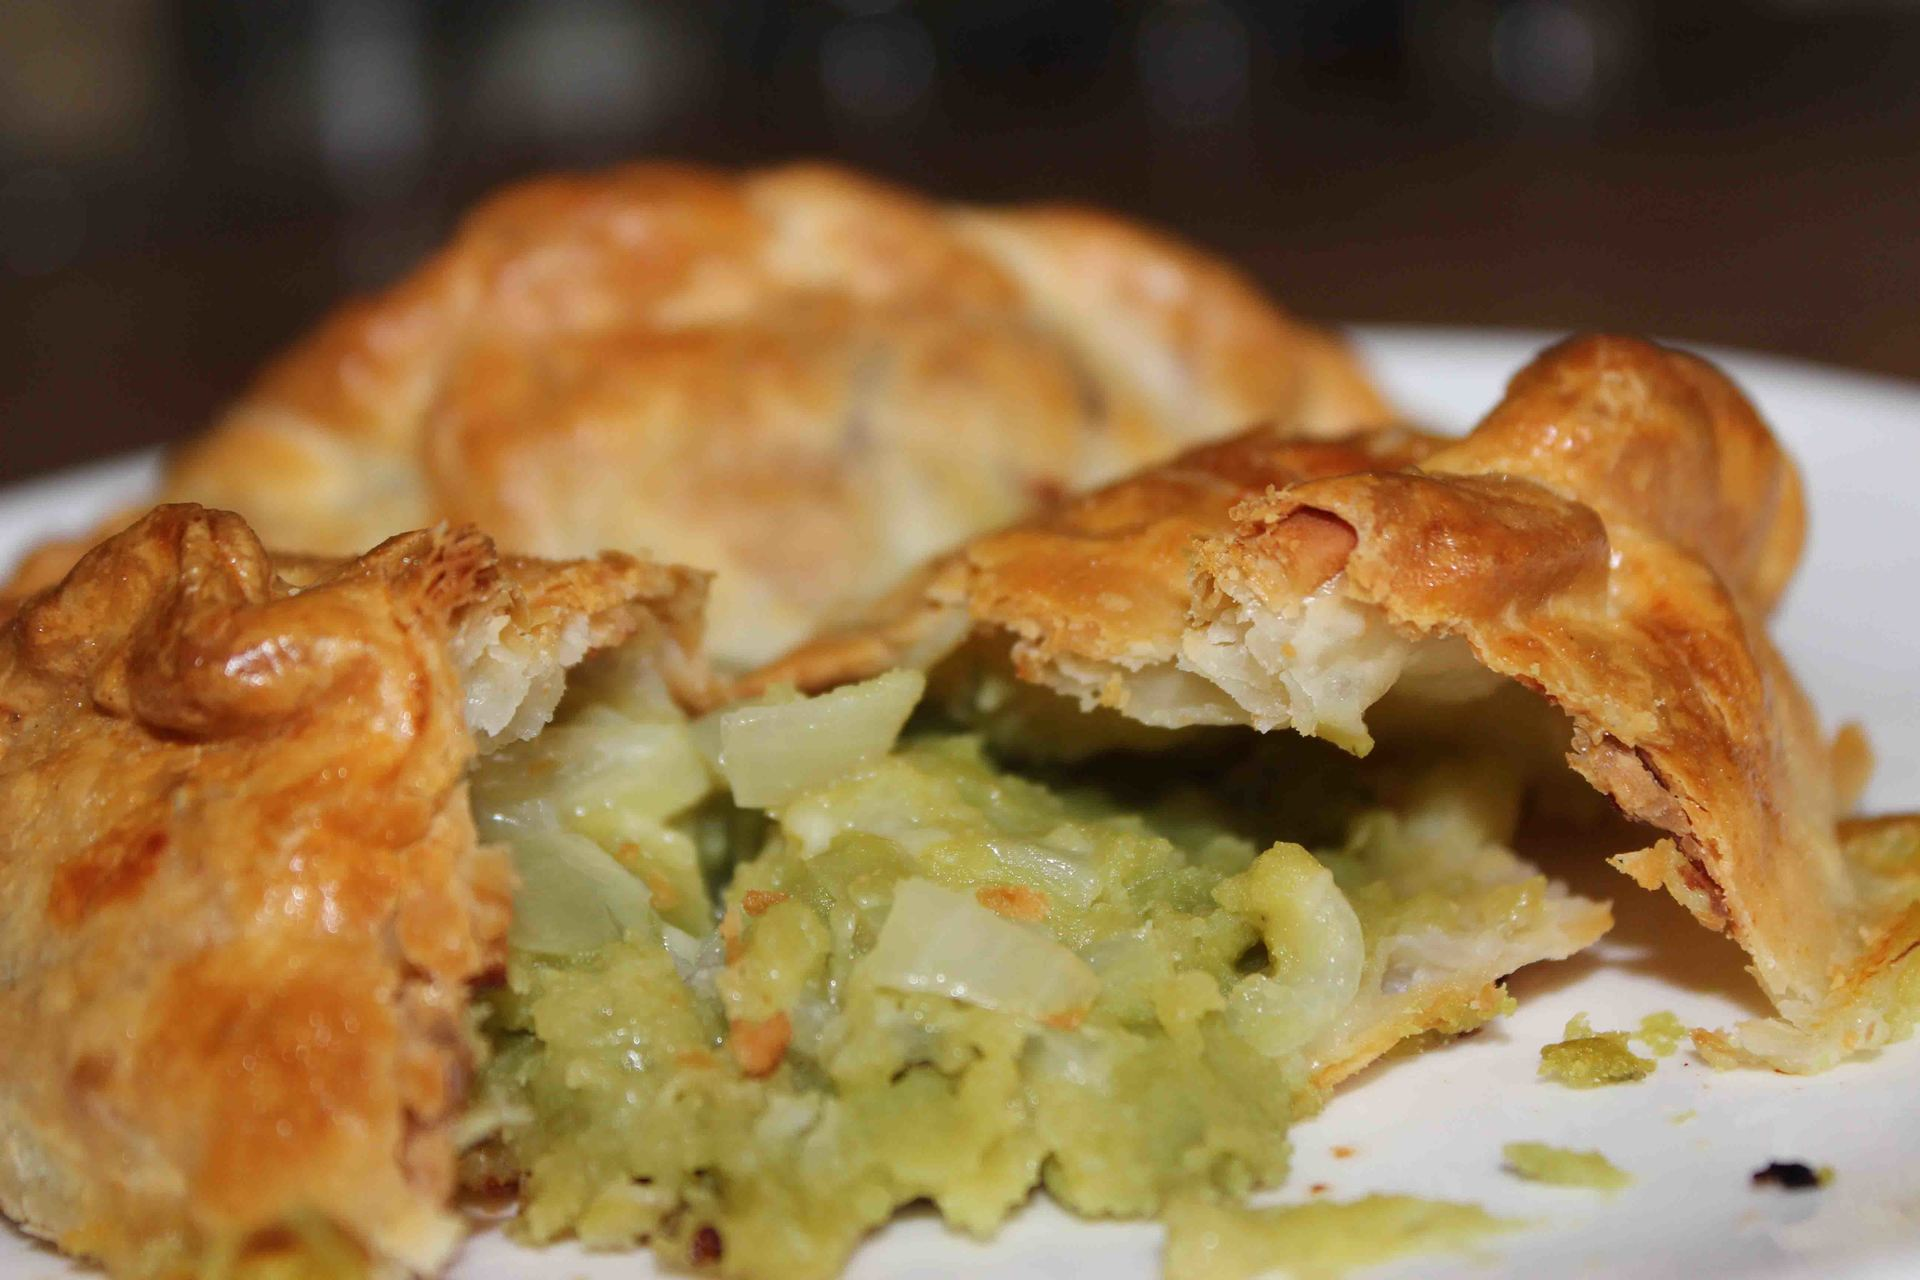 Doc Tremayne's chesse and mushy pea pasty photo by L A Kent Cornish author of Inspector Treloar Mysteries